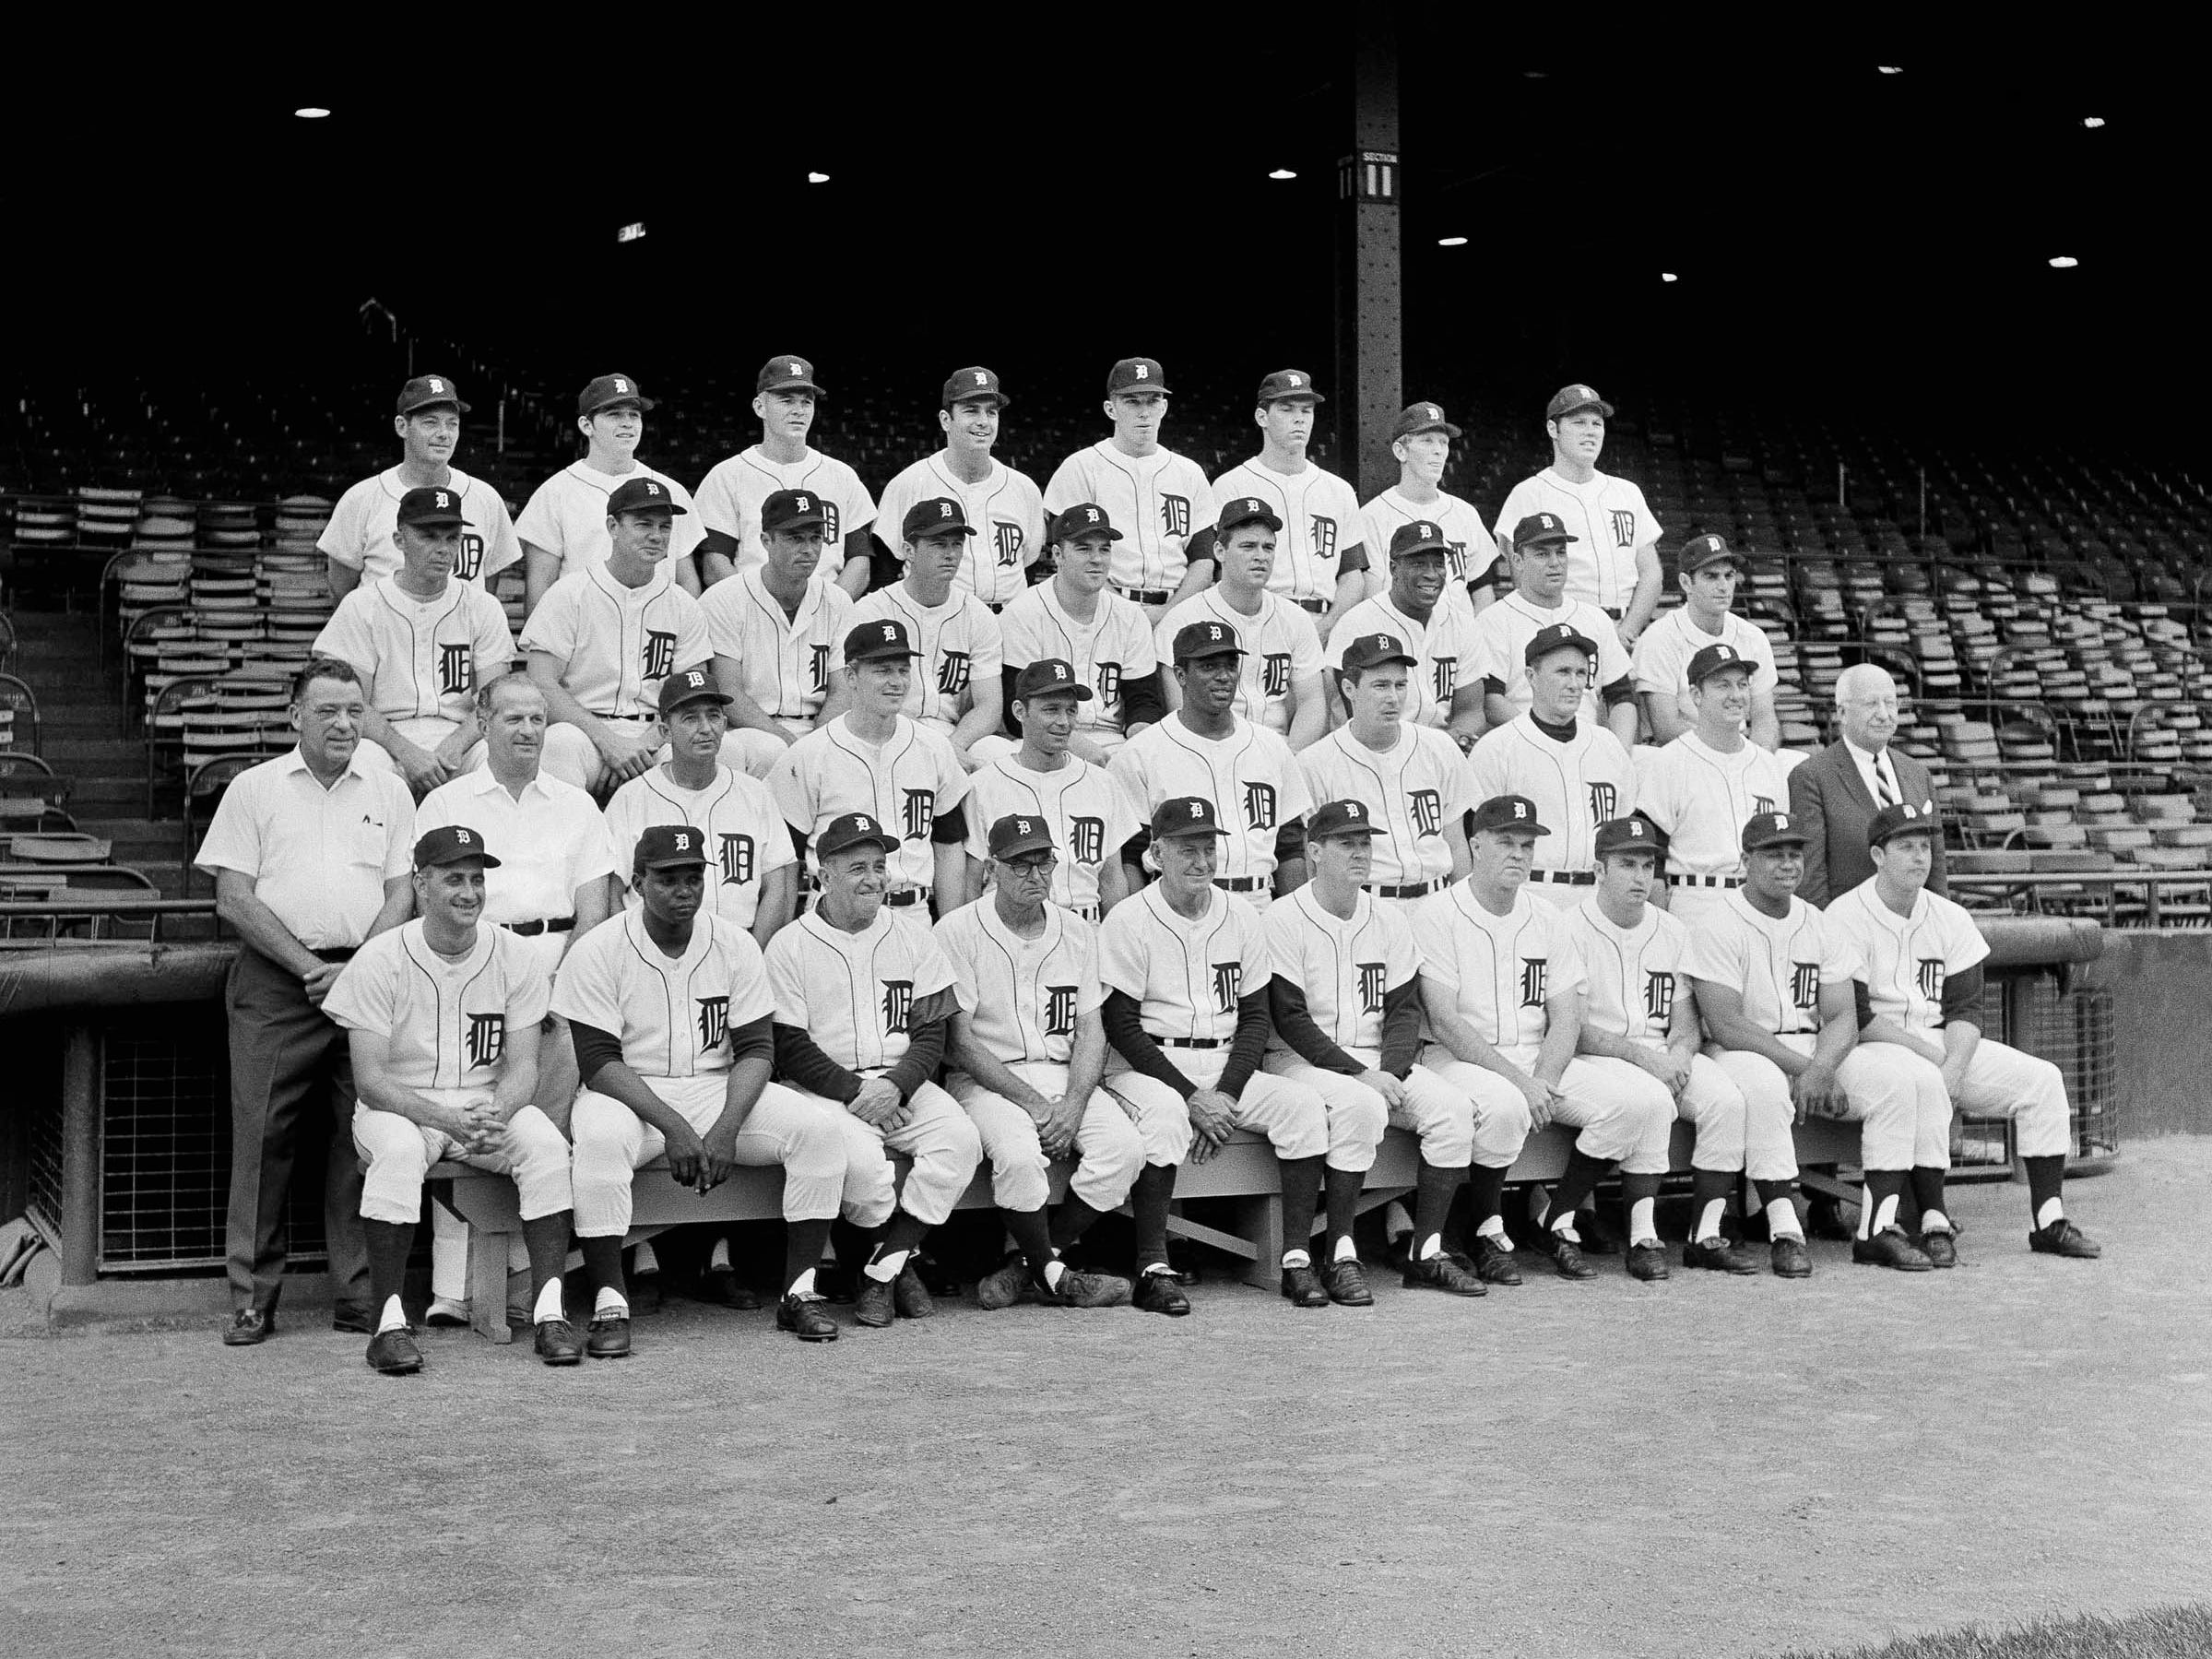 Detroit Tigers team shown in Detroit on Sept. 18, 1968 - the American League Champions and World Series Champions for 1968. Front row from left: Don Wert, John Wyatt, Tony Cuccinello, Wally Moses, Mayo Smith, Hal Naragon, John Sain, Ware Comer, Willie Horton and Mickey Lolich. Second row, from left: John Hand, Bill Behm, Julio Moreno, Jim Northrup, Ray Oyler, Earl Wilson, Fred Lasher, Don McMahon, Al Kaline, secretary Charlie Creedon Third row, from left: Dick Tracewski, Norm Cash; Eddie Nathews, Jim Price, Jon Warden, Denny McLain Gates Brown, John Hiller, Dick McAuliffe. Back row: Elroy Face, Bob Christian, Mickey Stanley, Joe Sparma, Daryl Patterson, Pat Dobson, Tom Matchick, Bill Freehan.